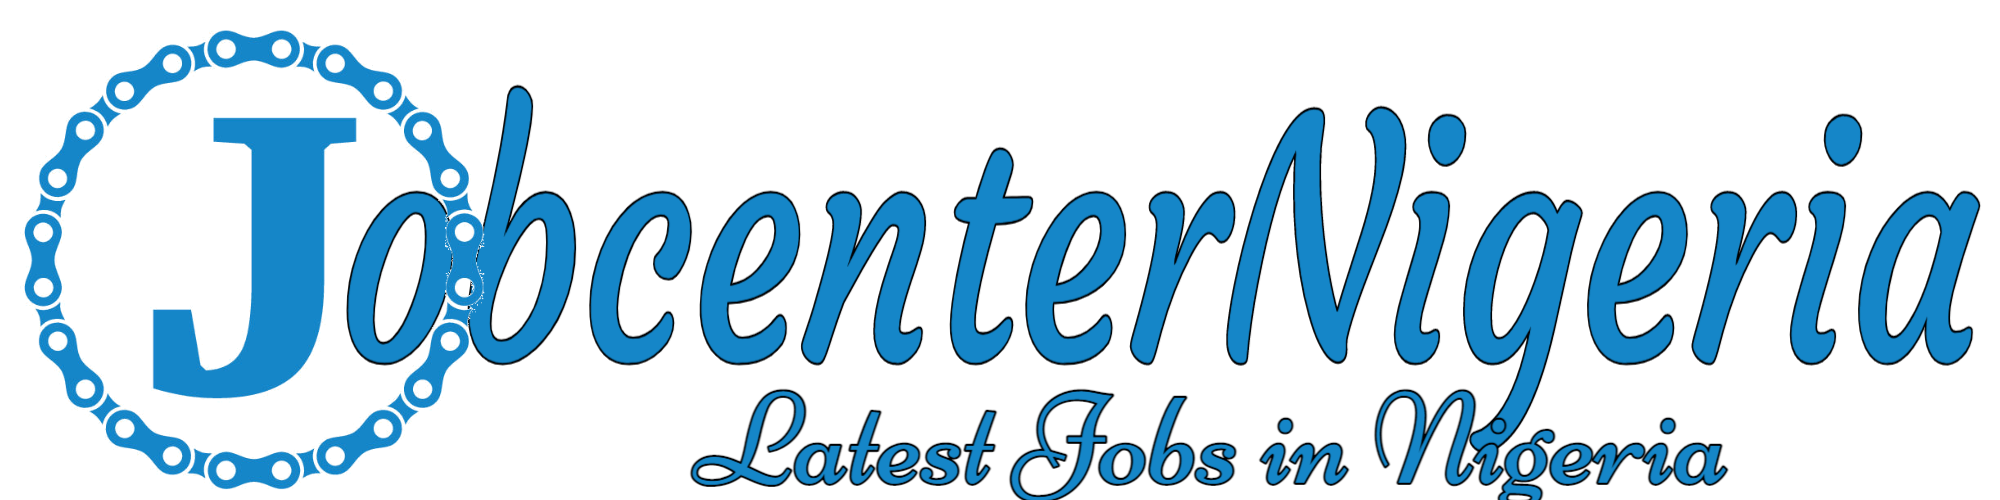 Latest Jobs in Nigeria 2021 - Job Vacancies by JobcenterNigeria